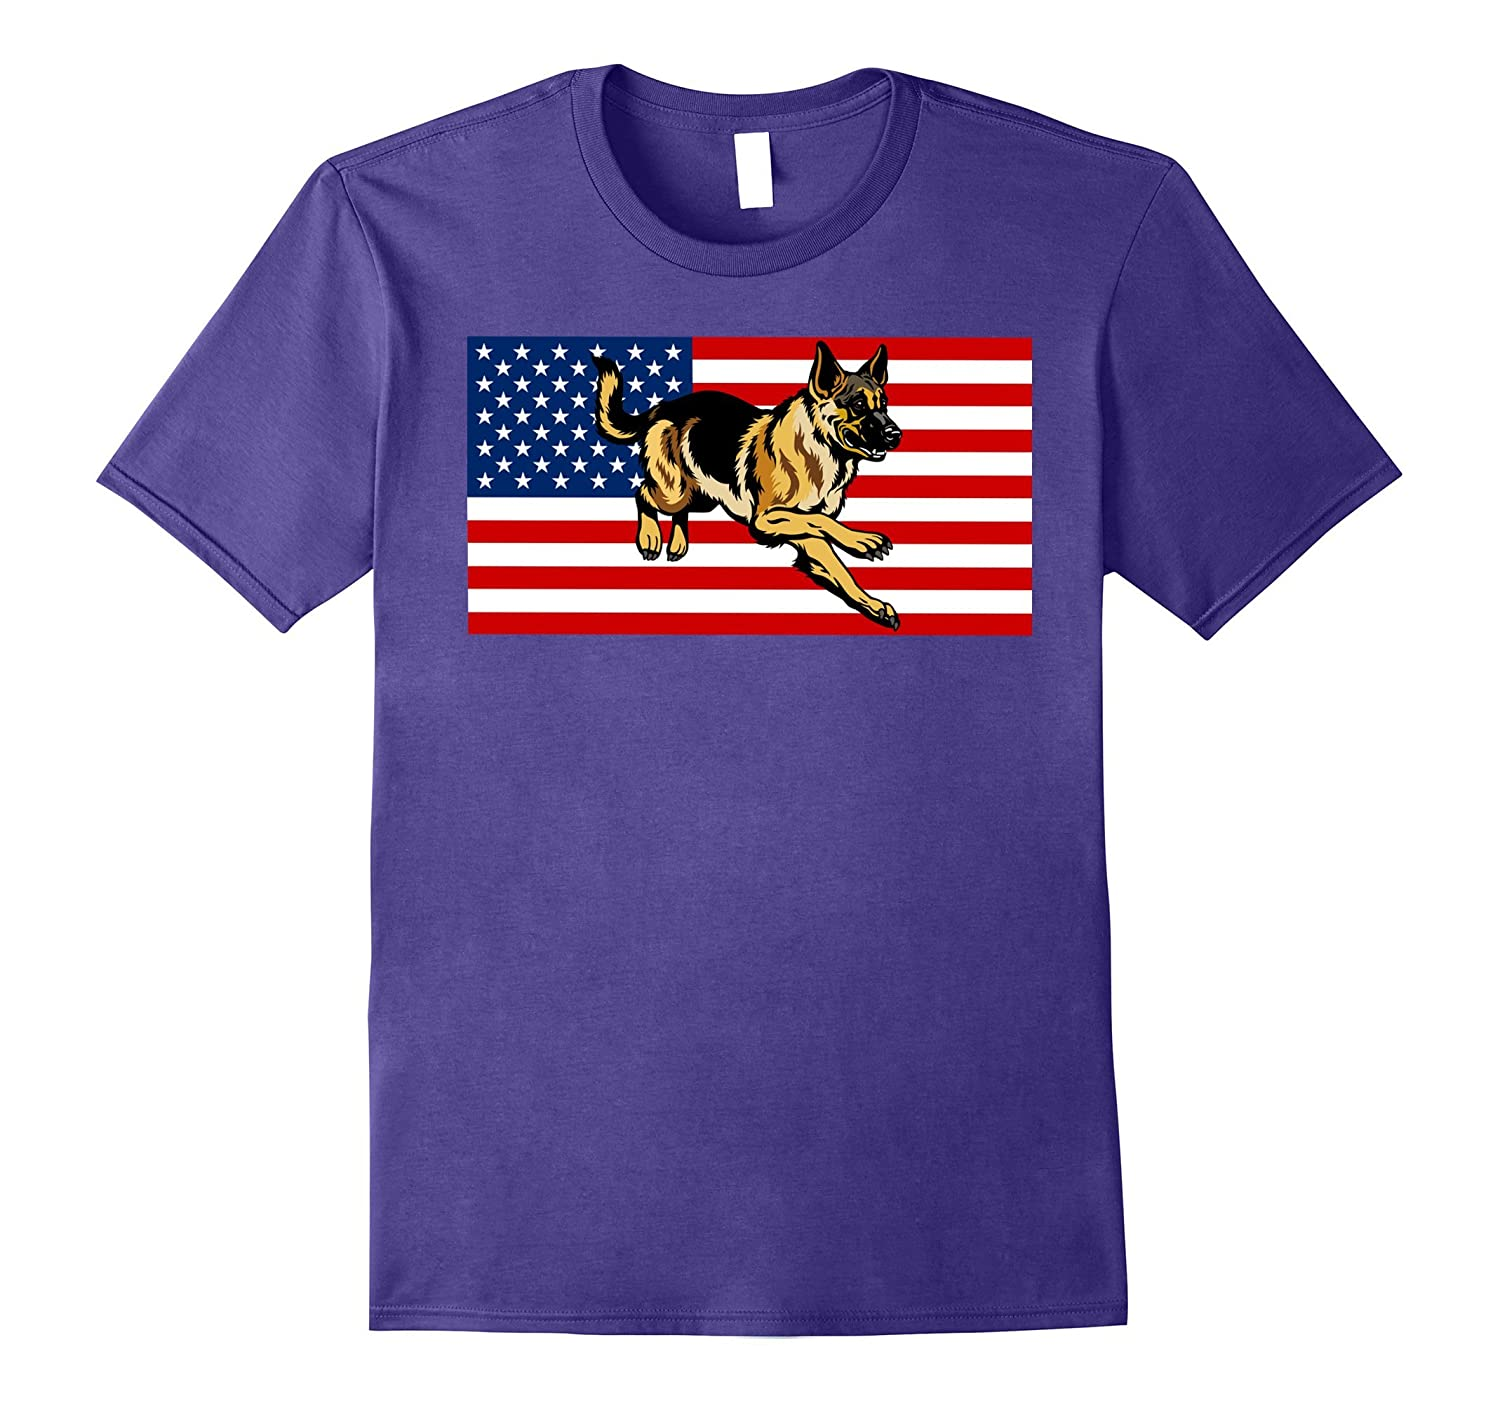 American Flag German shepherd T-shirt 4 Of July Gifts Proud-PL